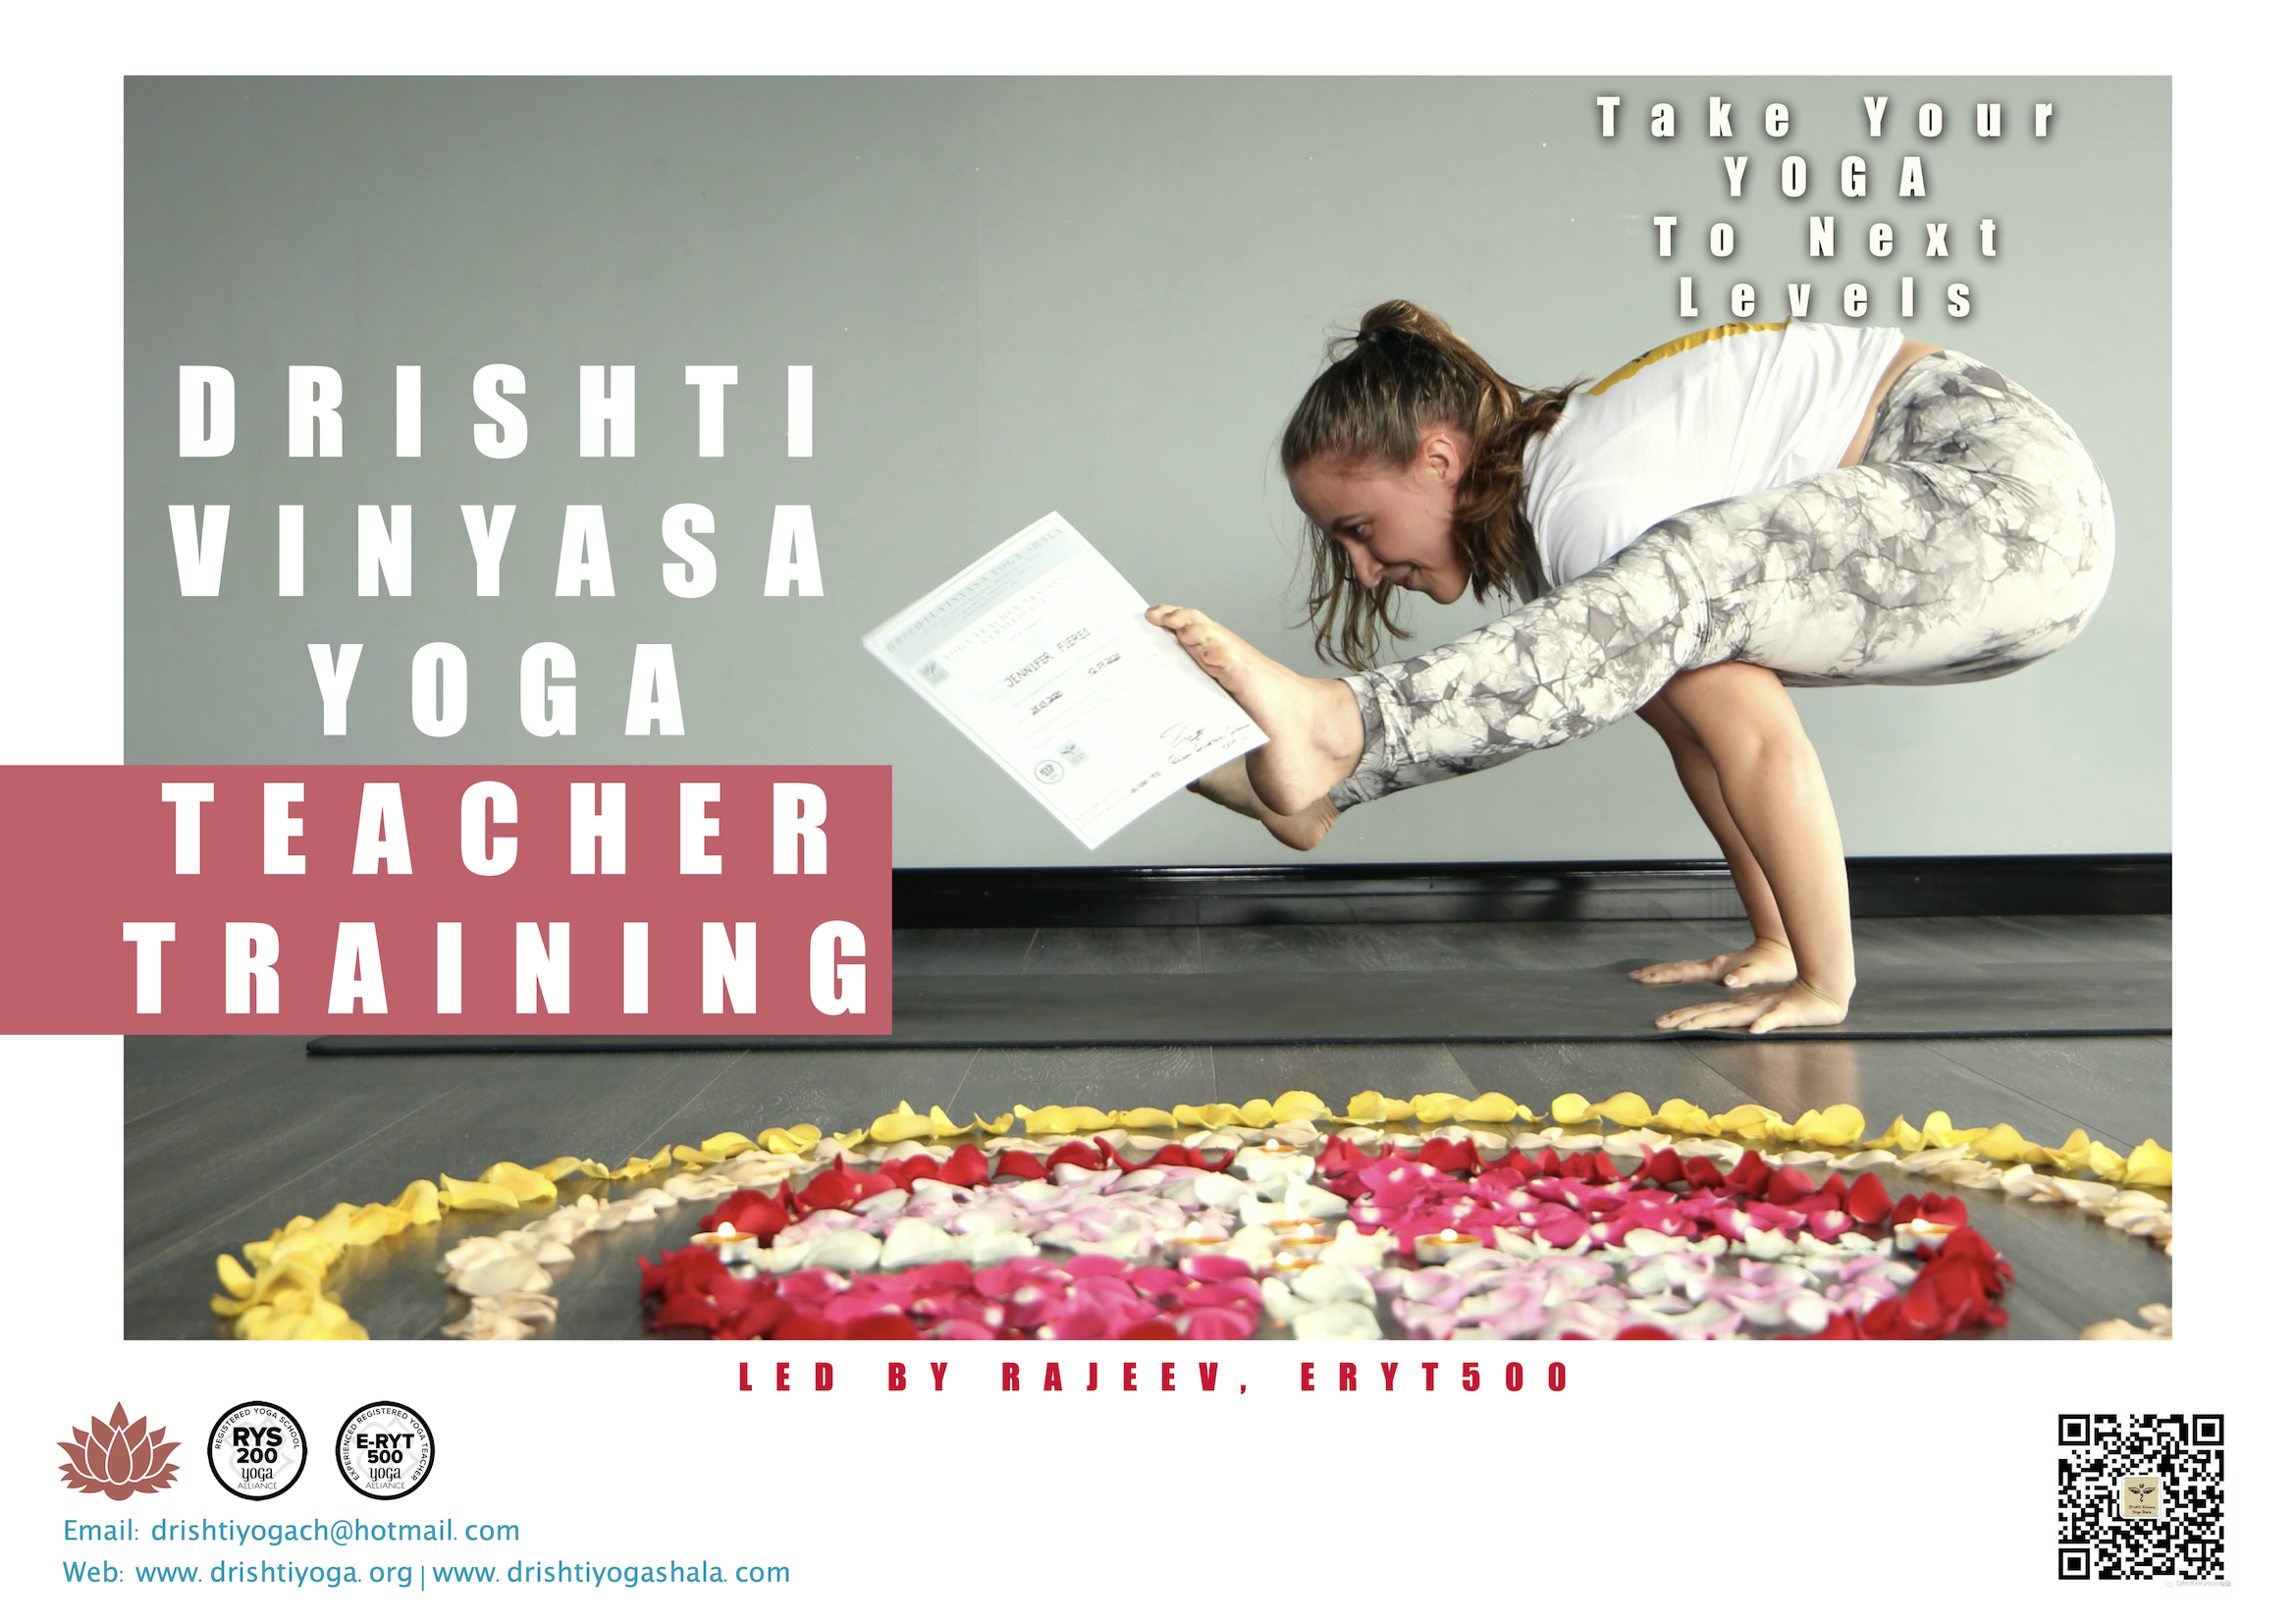 Drishti Vinyasa Yoga Teacher Training - Aug-Nov 2020 - Shanghai, China copy 7-p1.jpg